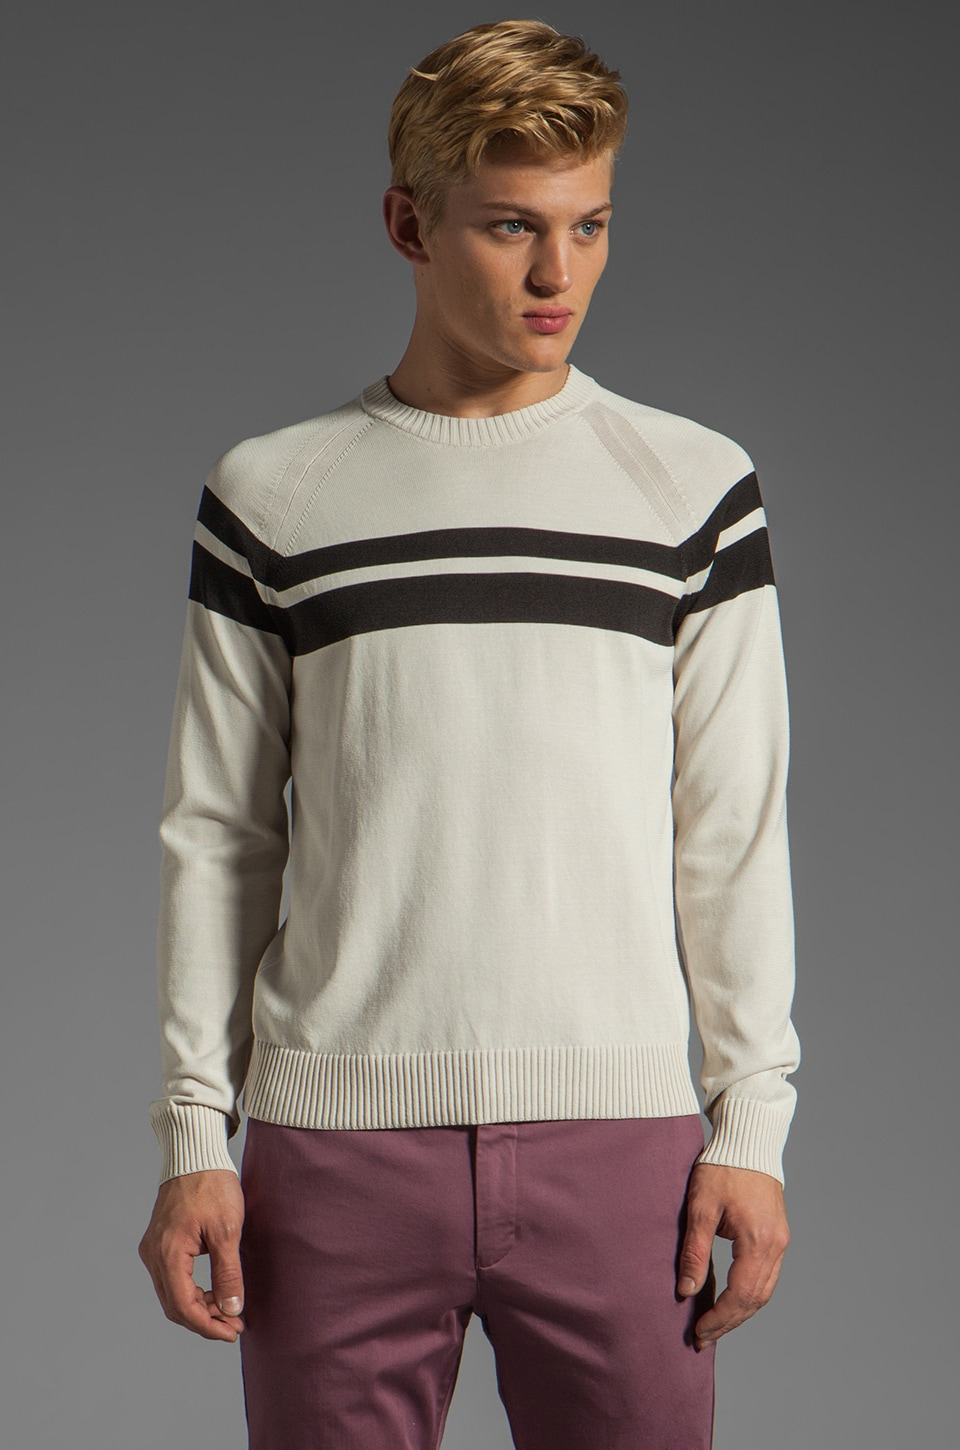 Theory Maneuver Lorenz Sweater in Light Haight